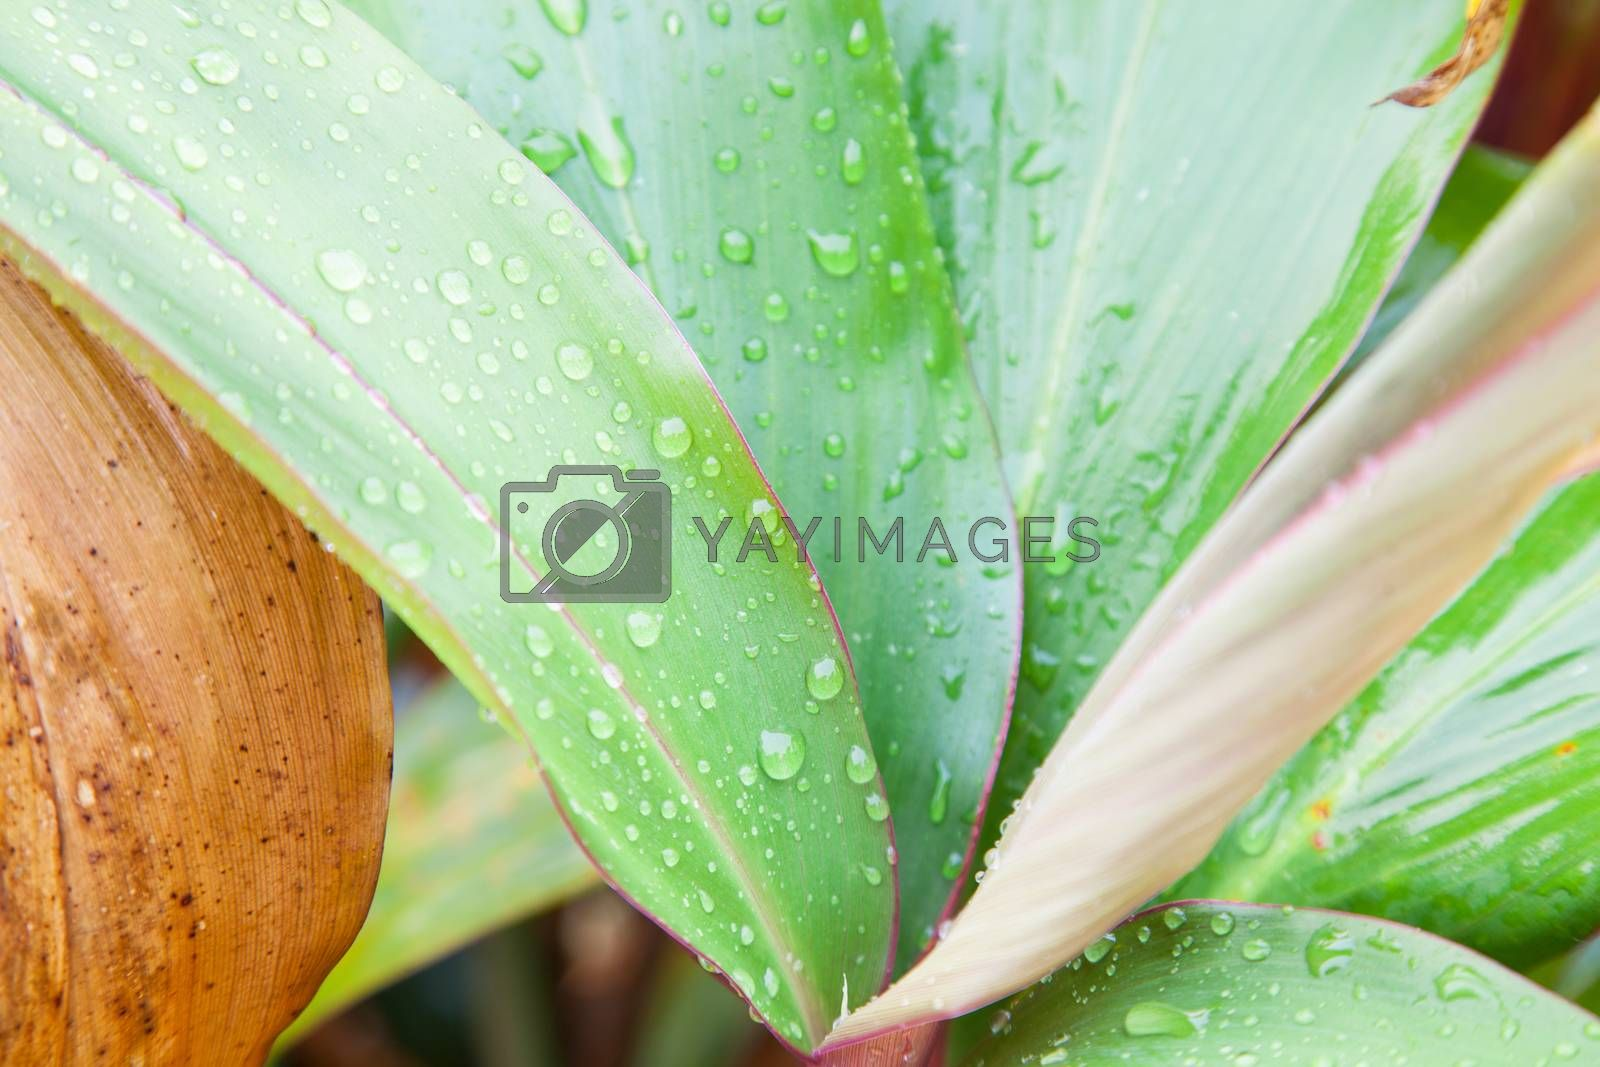 Water droplets on leaves by a454